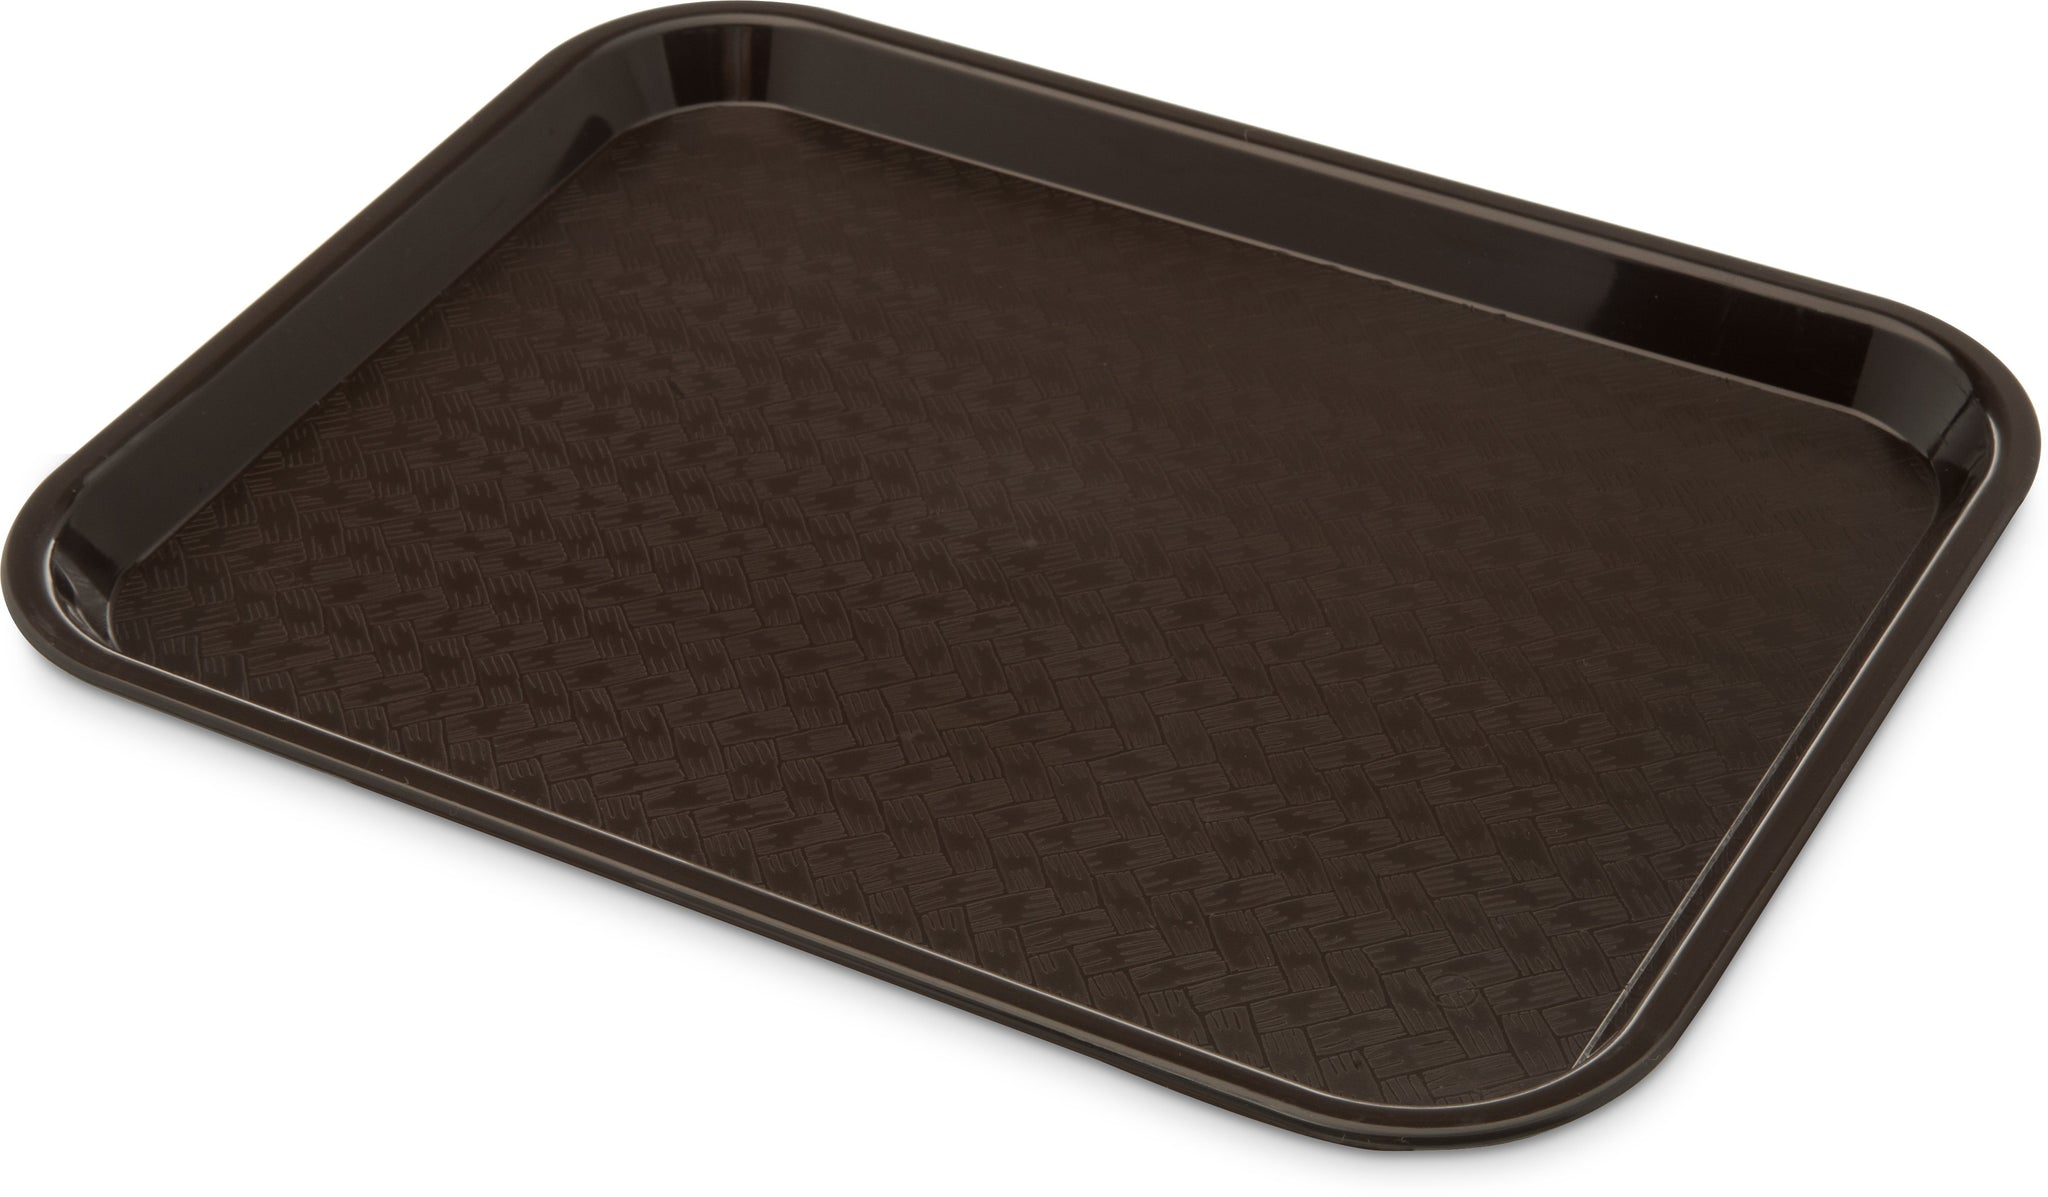 "Carlisle CT101469 Café Tray, 13/7/8""L x 10-3/4""W, rectangular, drying/stacking lugs, skid and scratch resistant, polypropylene, chocolate, NSF"